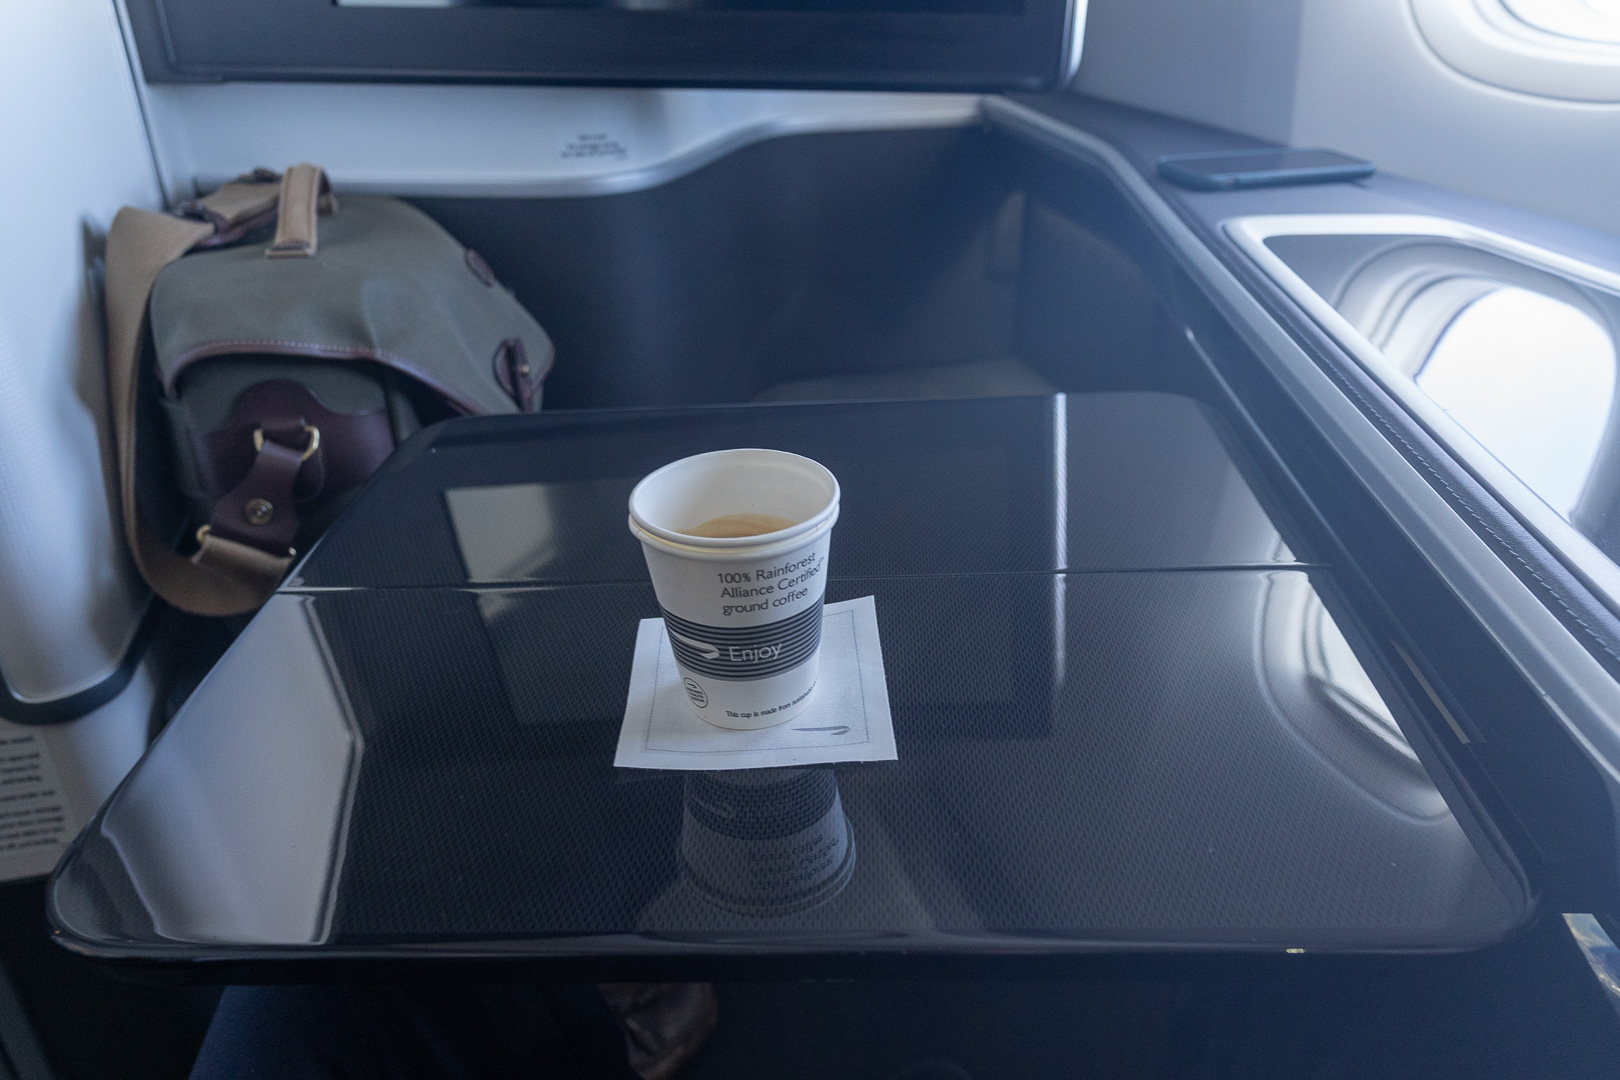 BA 77WN F 50 - REVIEW - British Airways : First Class Suites - B777 - London (LHR) to Malé (MLE) - [COVID-era]